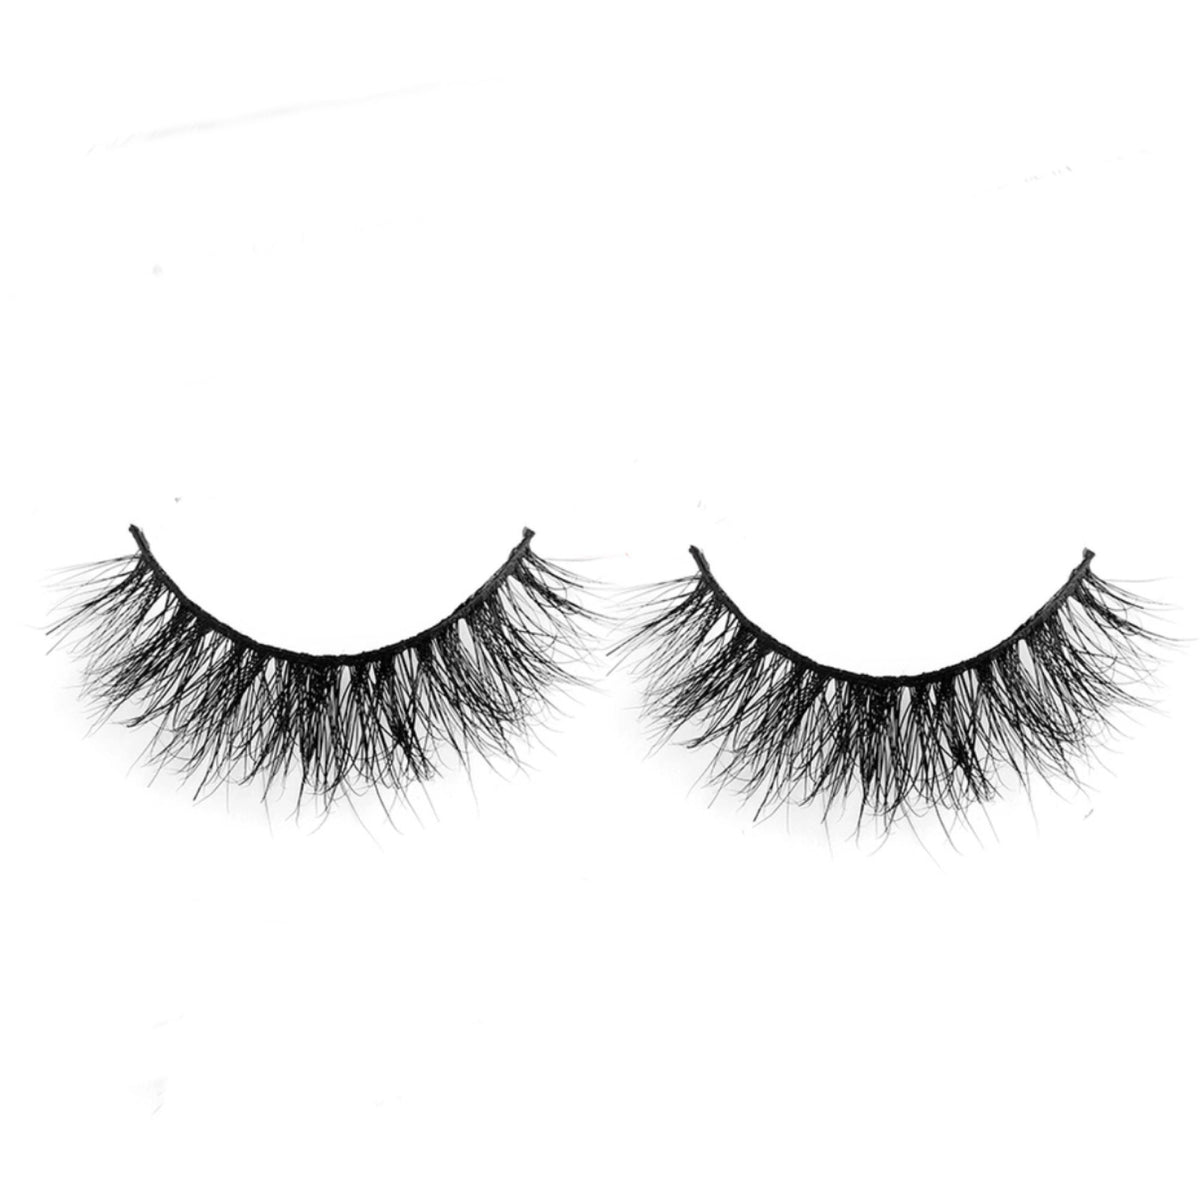 U No U Want Me 3D Mink Lashes Comes With Free Applicator - lexinoelbeauty.com